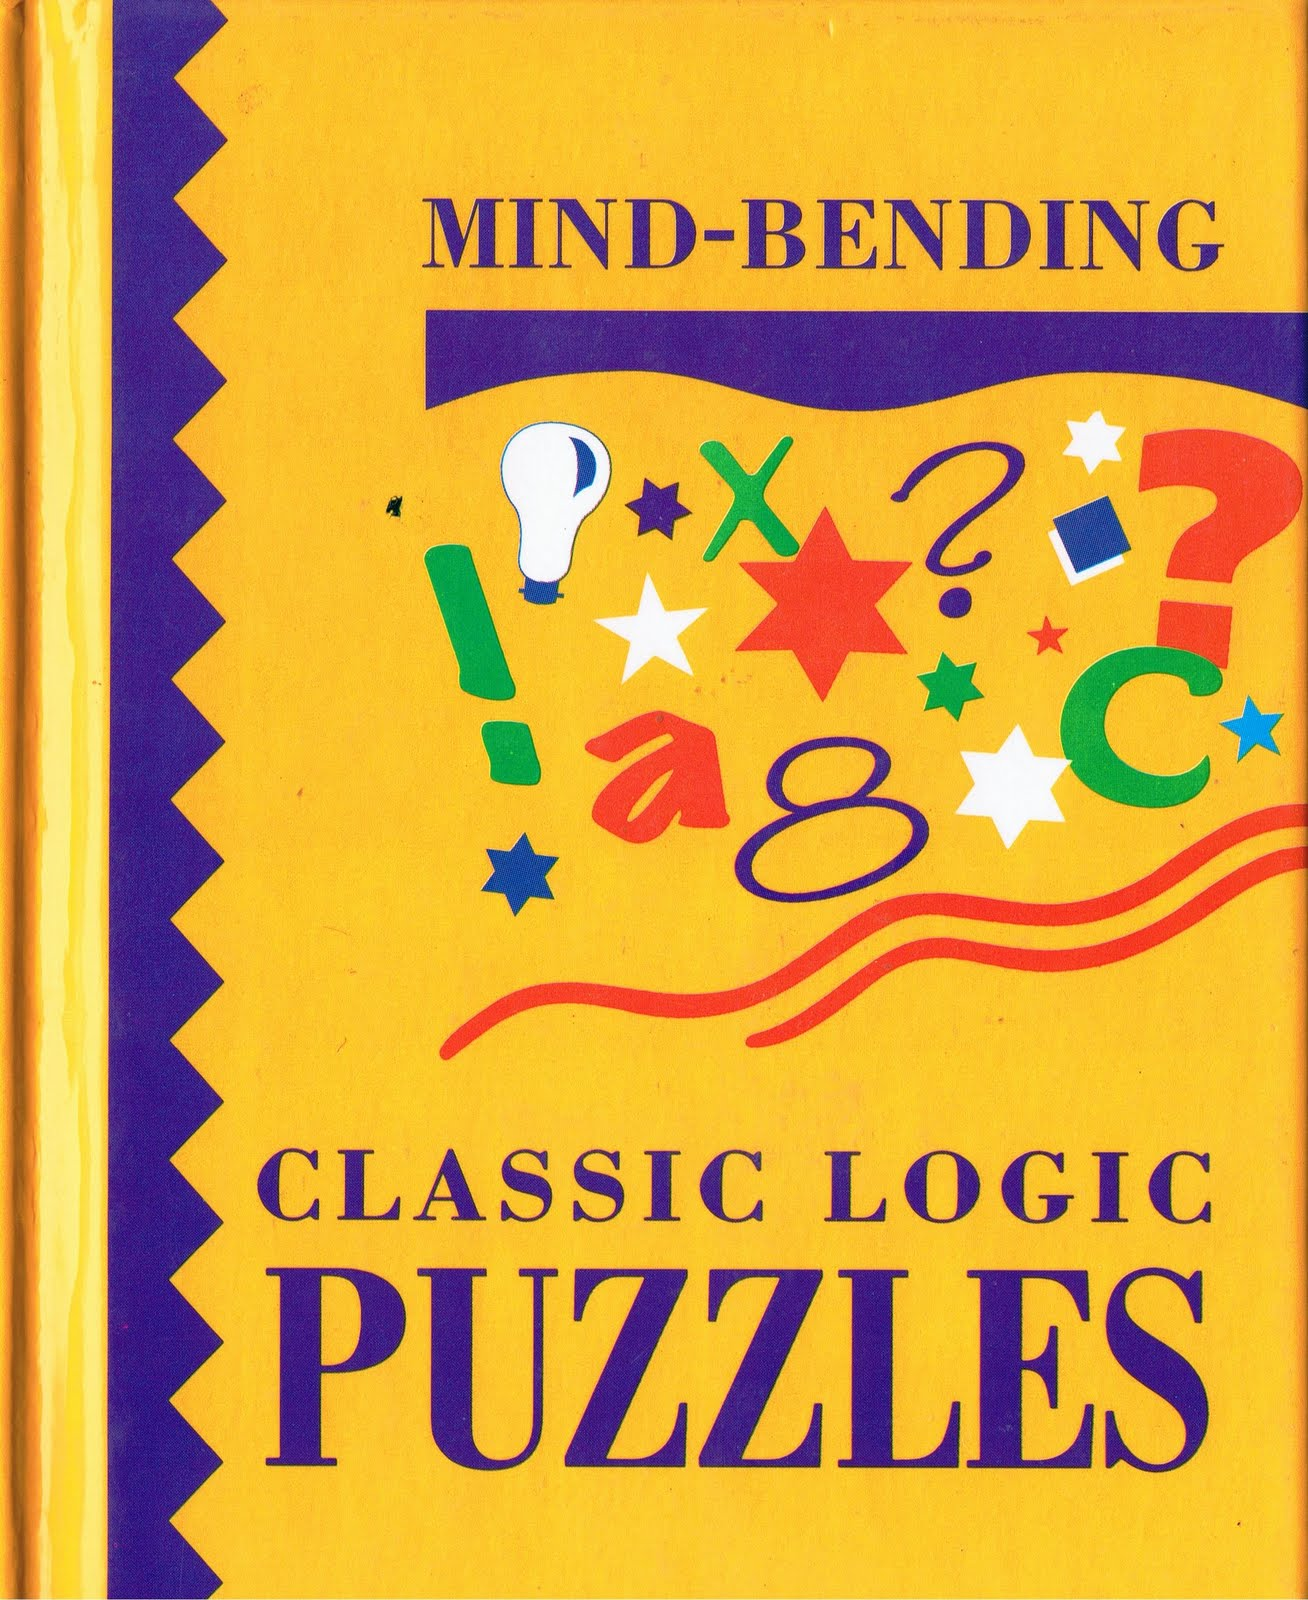 Little Library of Rescued Books: Mind-Bending Classic Logic